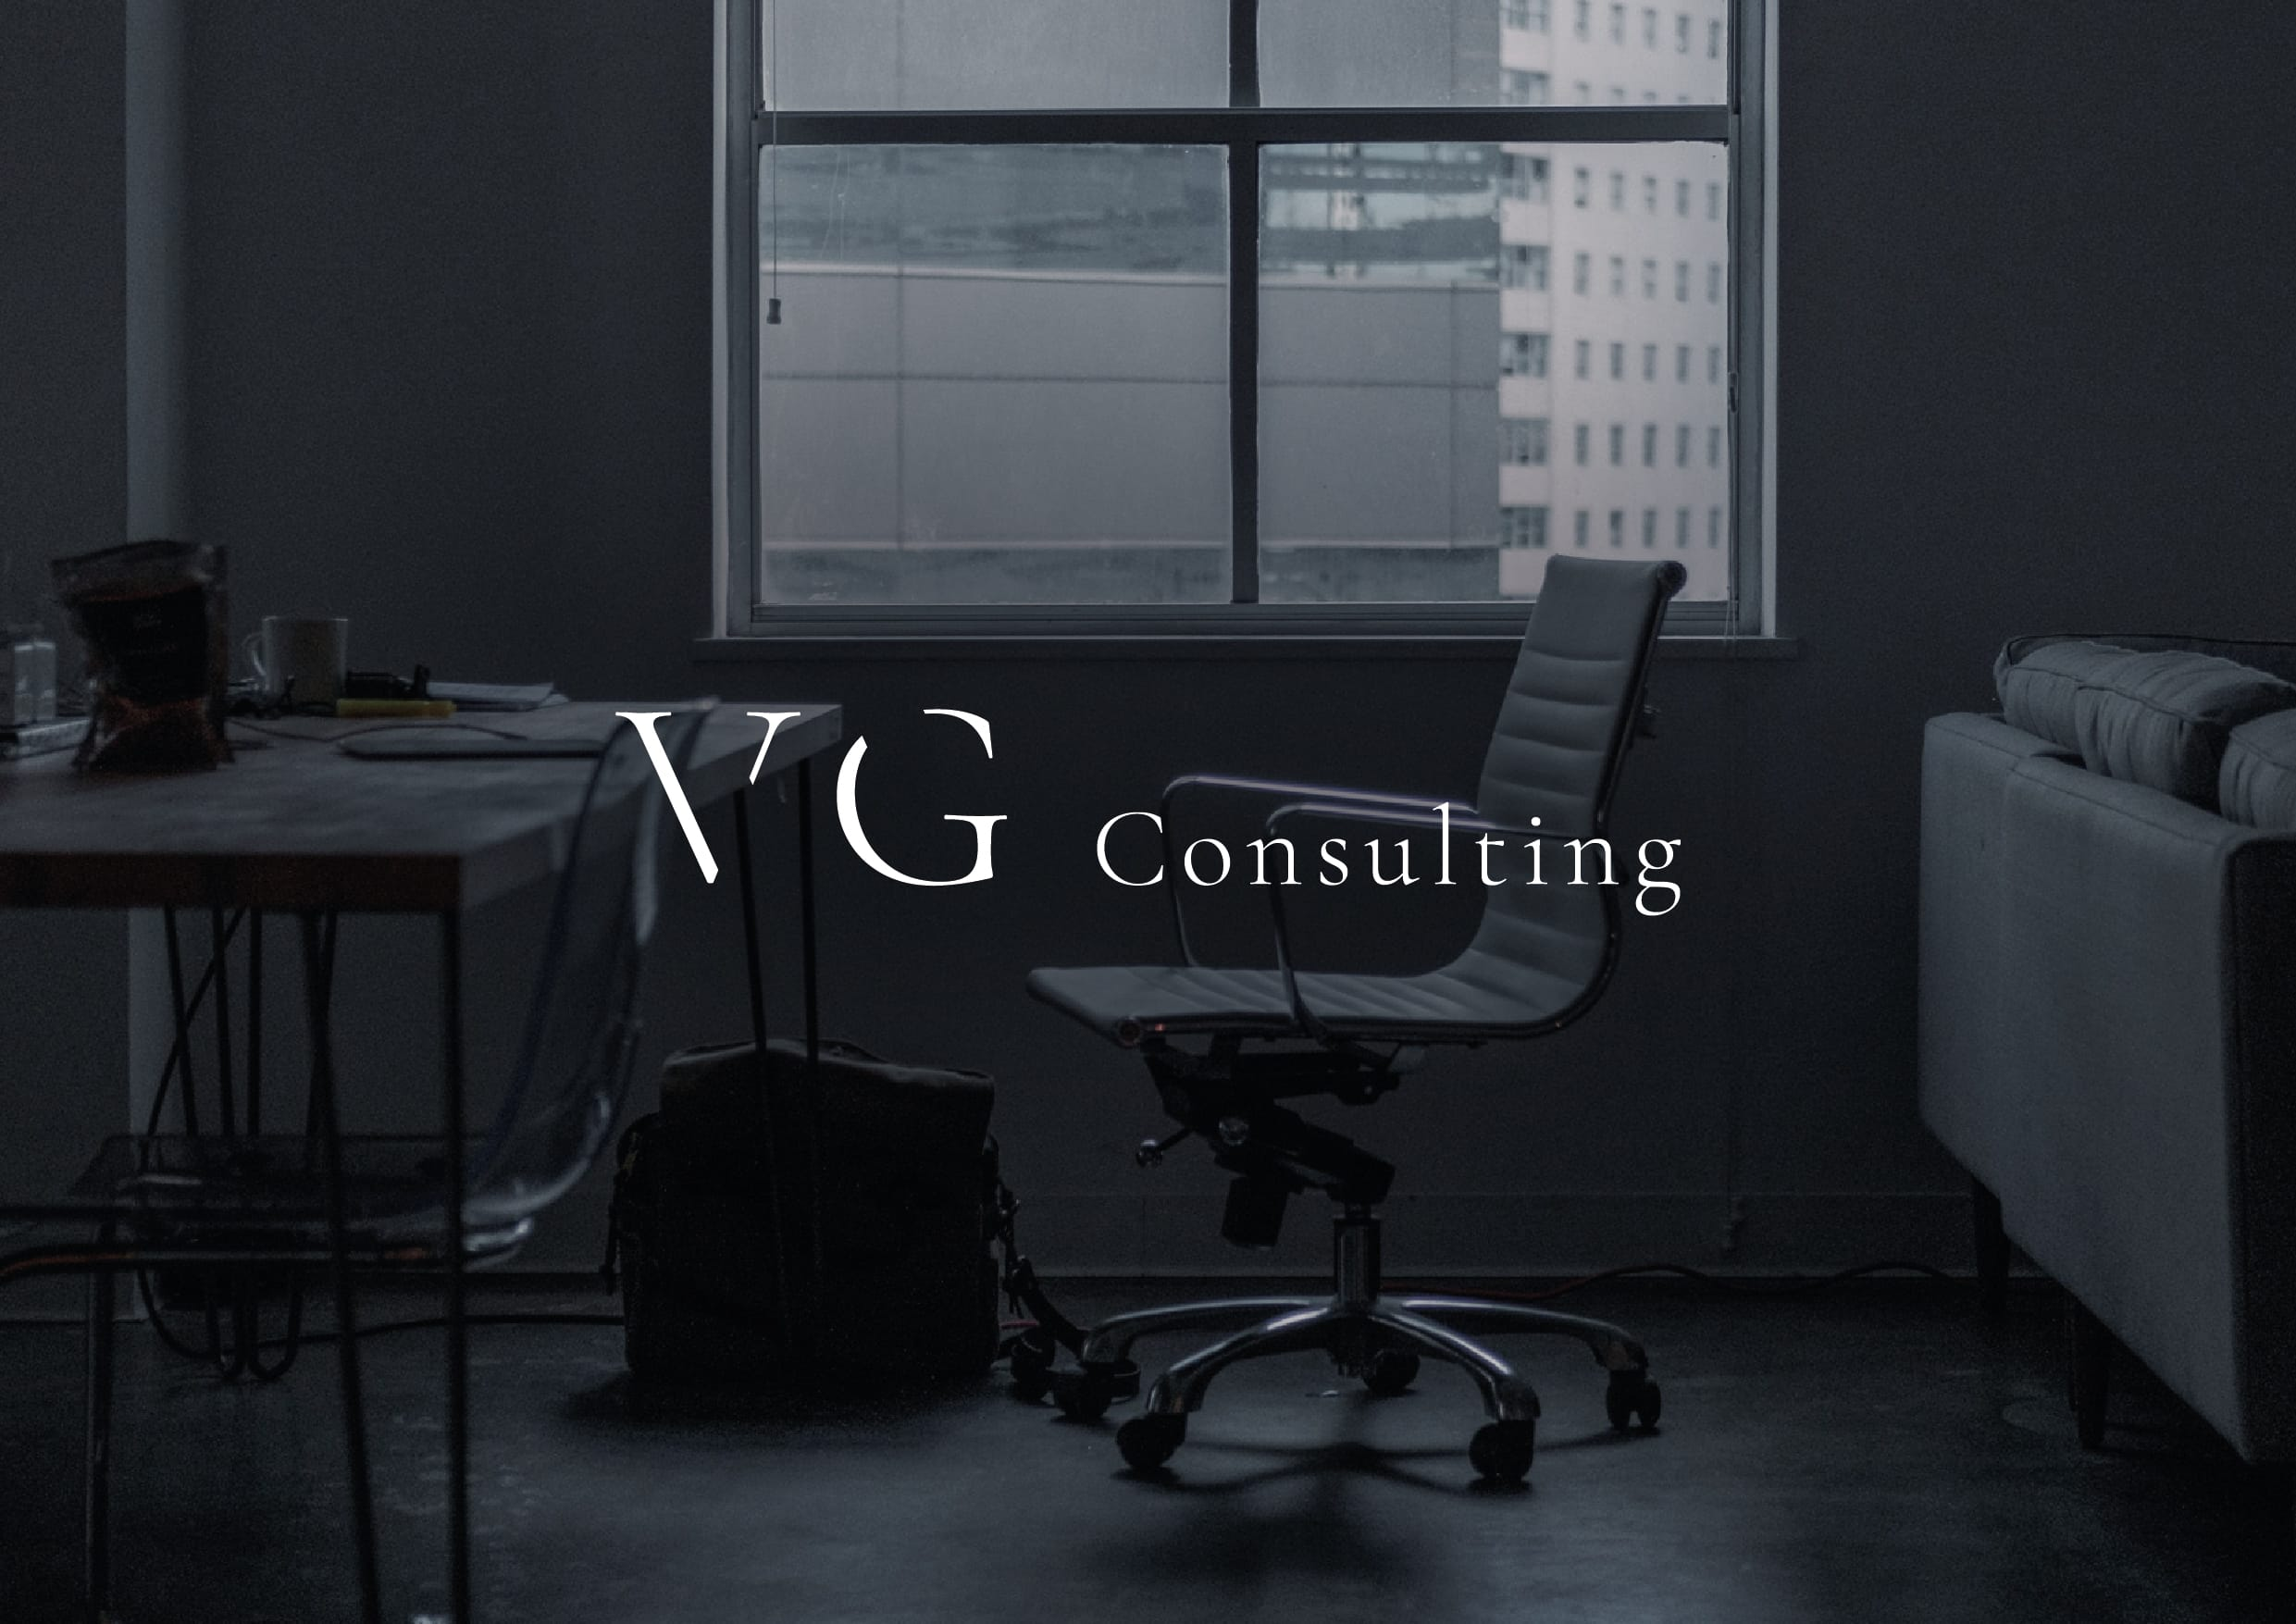 VG Consulting